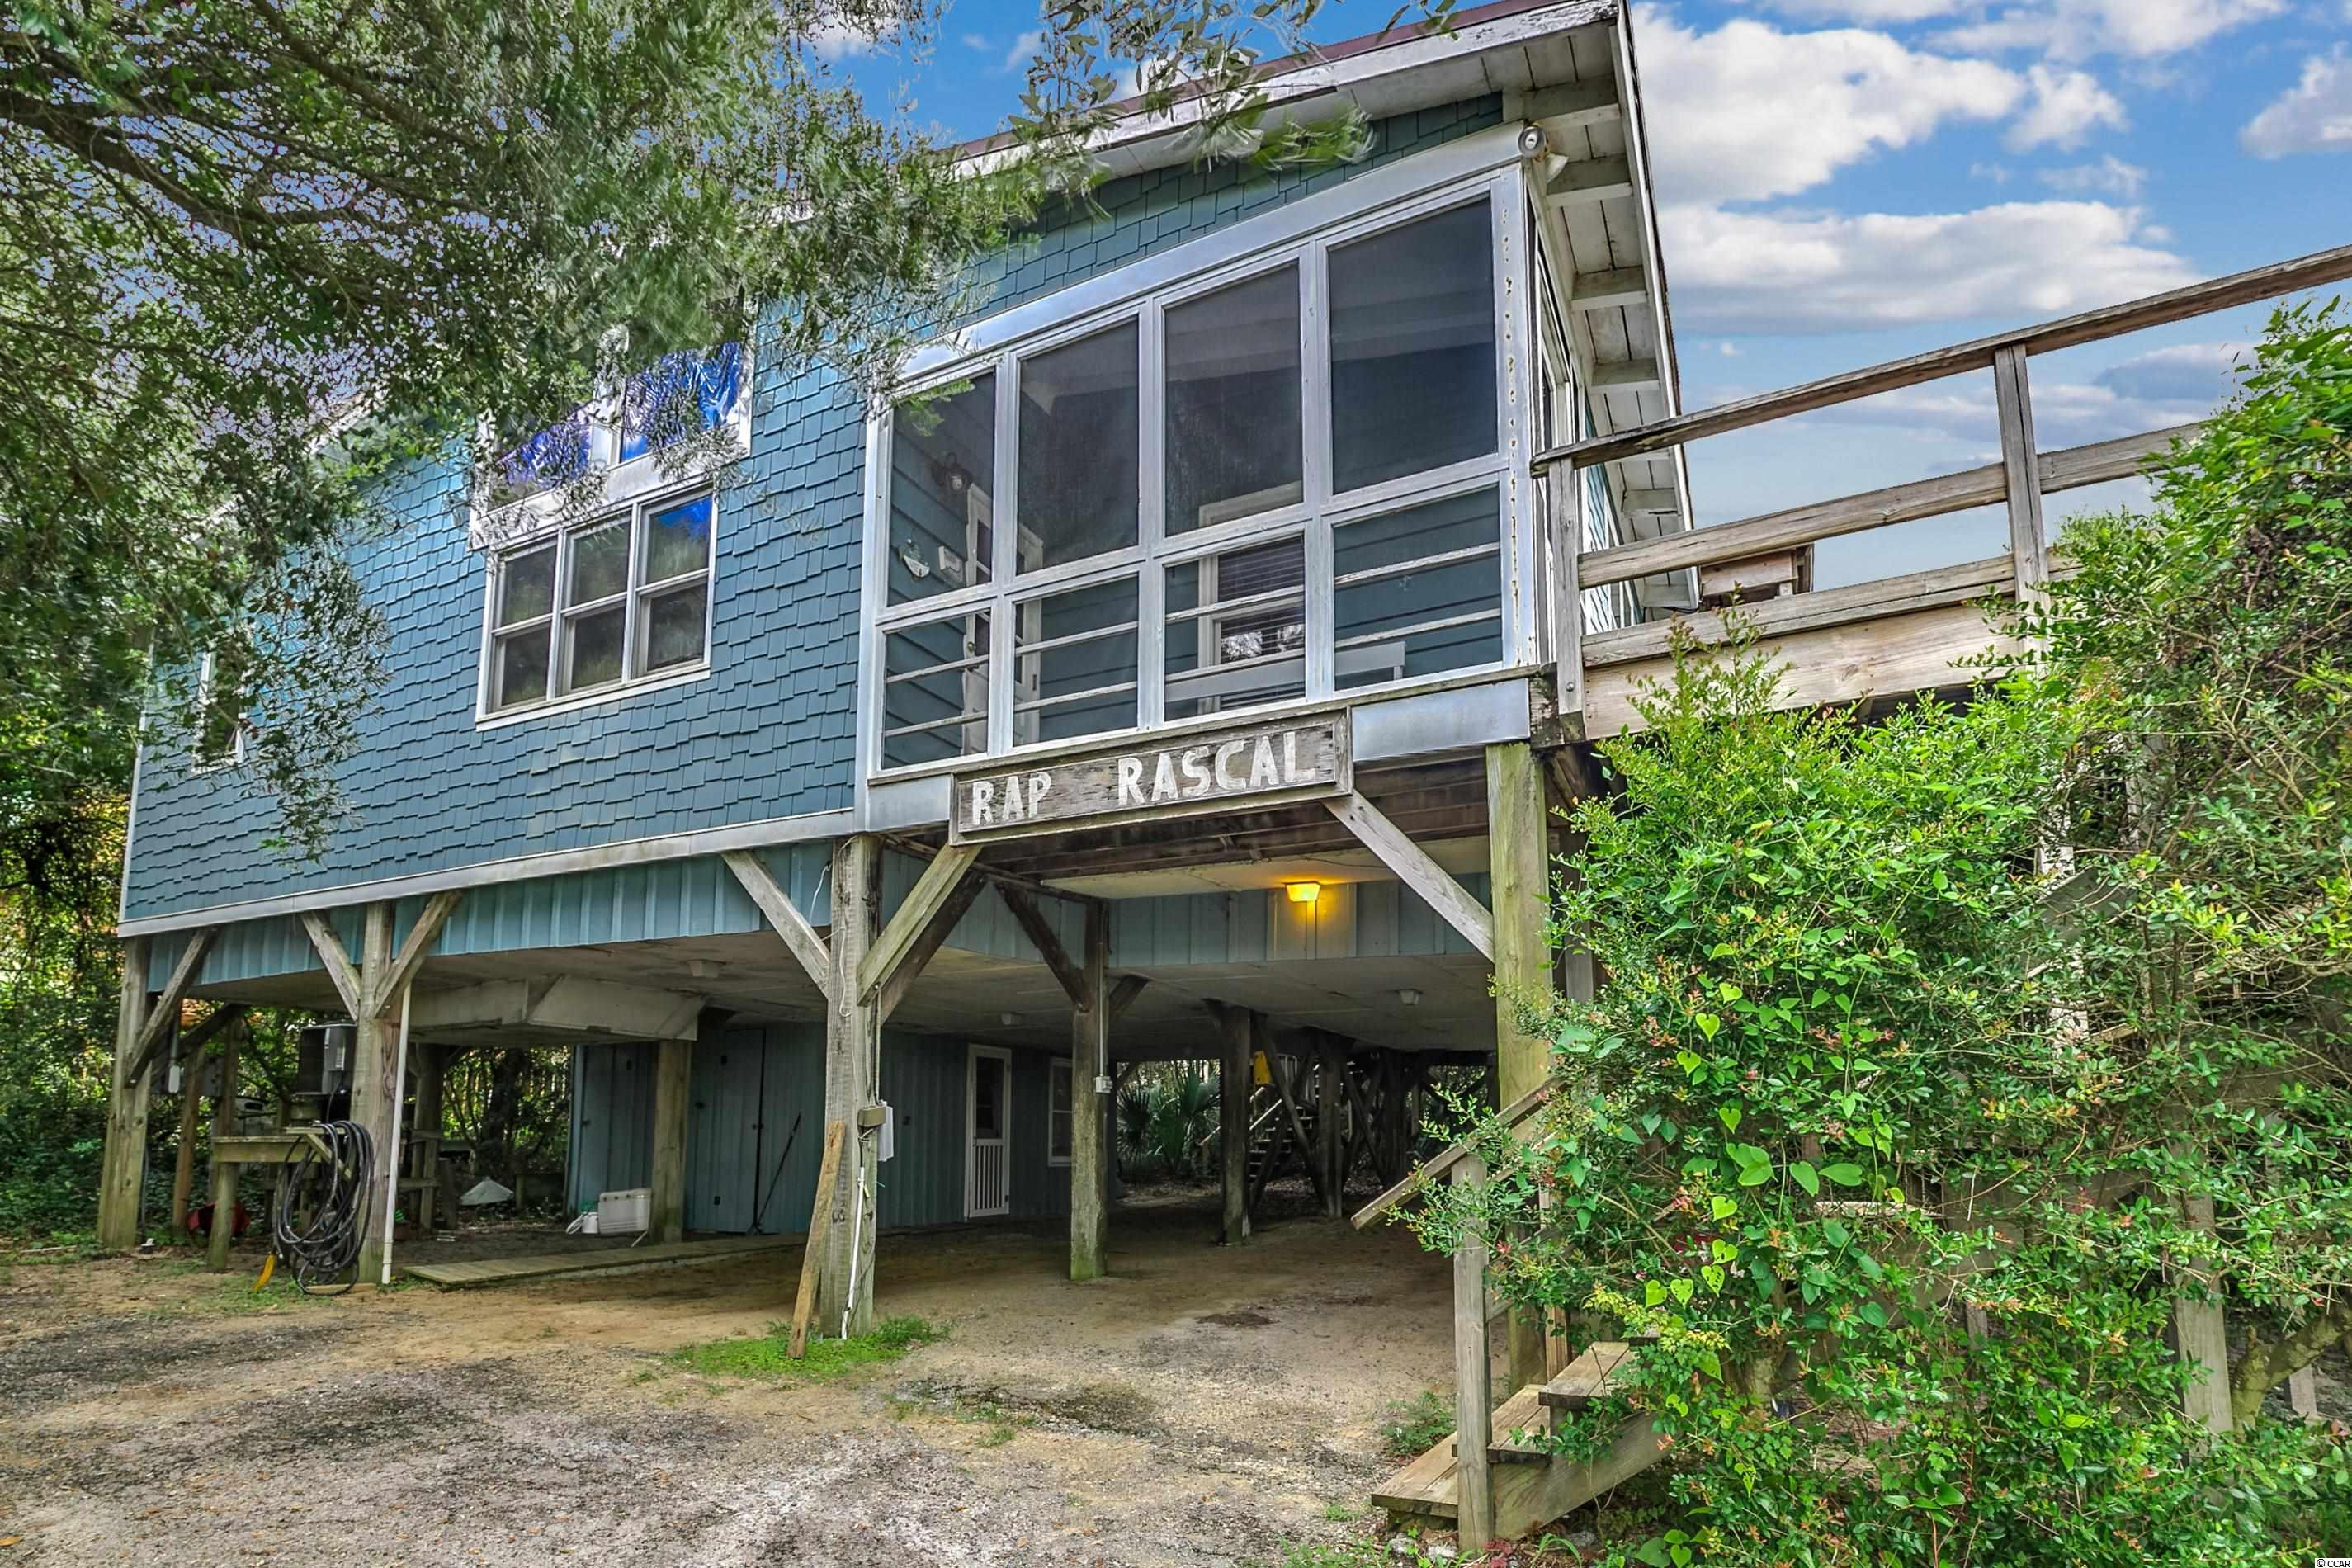 """The """"Rap Rascal"""", appropriately named for an """"arrogantly shabby"""" home...is not just resting on Pawleys Island, but also on the oceanfront AND creekfront, WITHIN the Island's Historic District. History abounds all over Pawleys, but none more than this center Island location, a place between the two Causeways, where proposals are offered, teenagers frolic each year during the Summer's """"first week at the beach"""", Fourth of July celebrated in style, family gatherings are revered and remembered forever, deep conversations frequent both the creekfront covered dock and the dune walk-over to the beach; and, well, once in a blue moon, there is seen a """"Gray Man"""" walking the beach before a storm. If yours, you will not hesitate to talk about Pawleys to all you know. You will be proud, and at the same time, you will claim the Island as yours. As soon as the word gets out of your new purchase, your friend-group will explode. So come take a peek. """"Rap Rascal"""" is really a cool place. There's absolutely nothing like Pawleys.  NOTHING."""